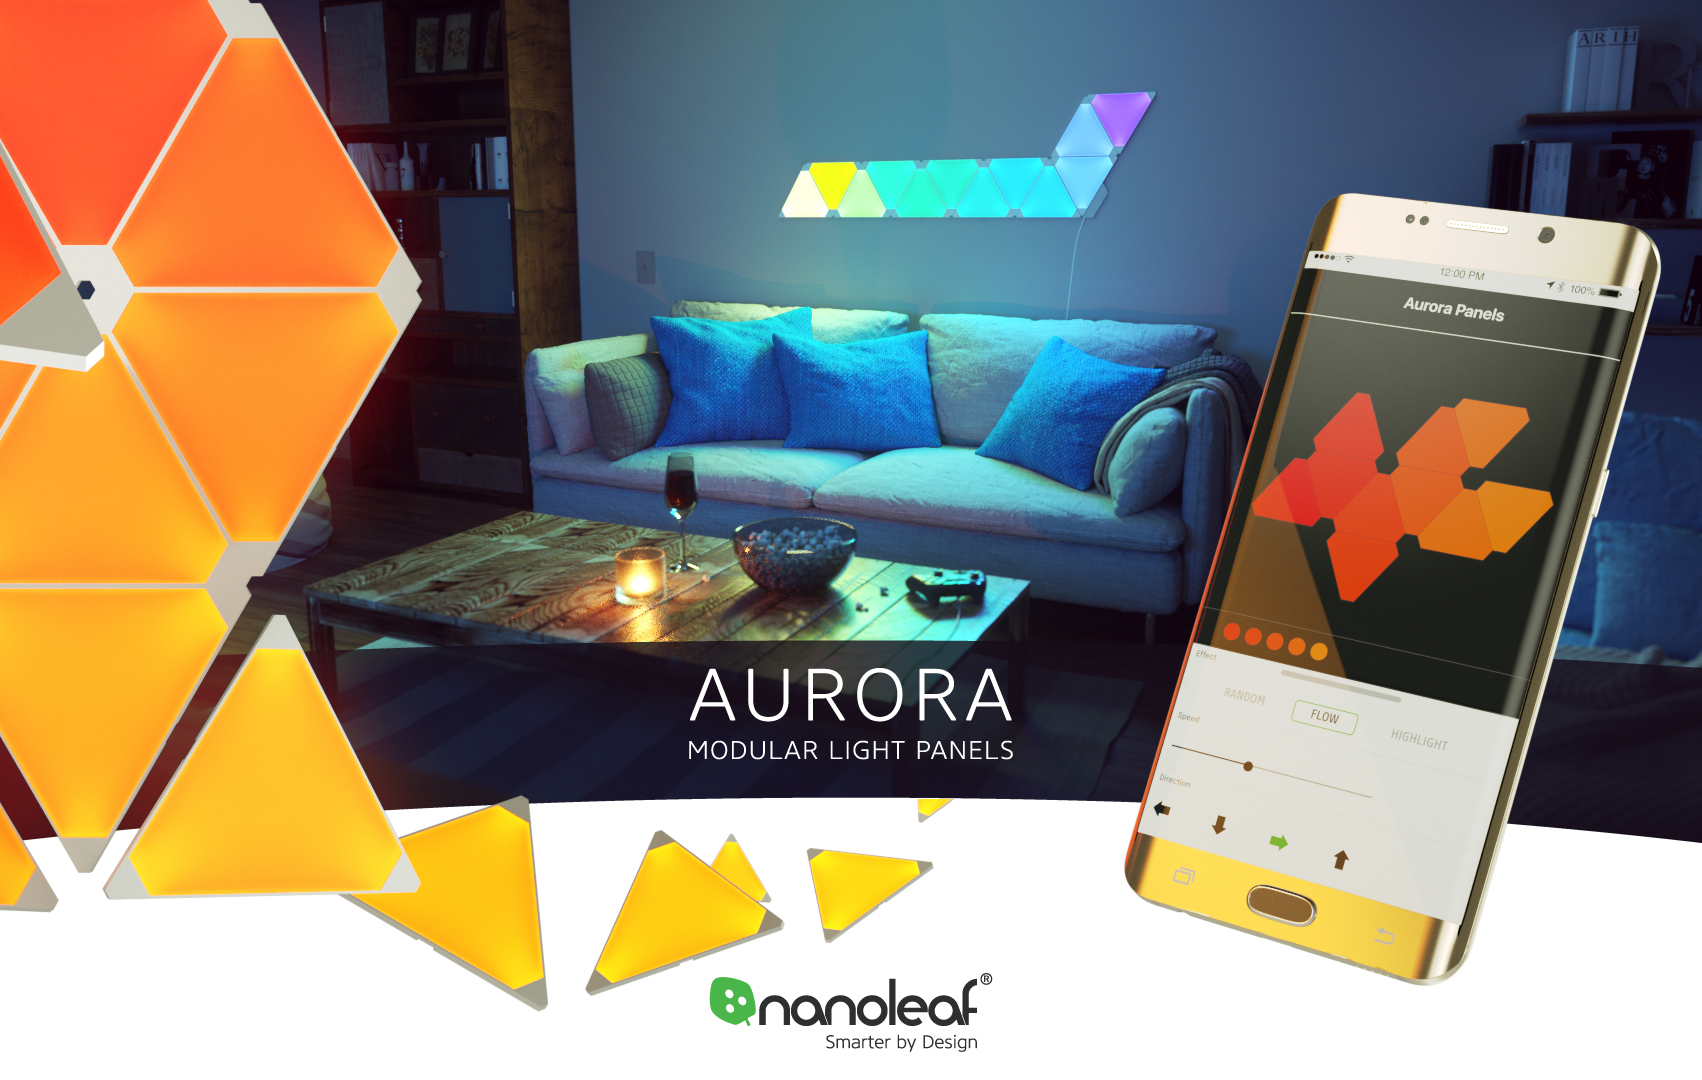 aurora-app-panel-room-1702X1080-RGB.jpg